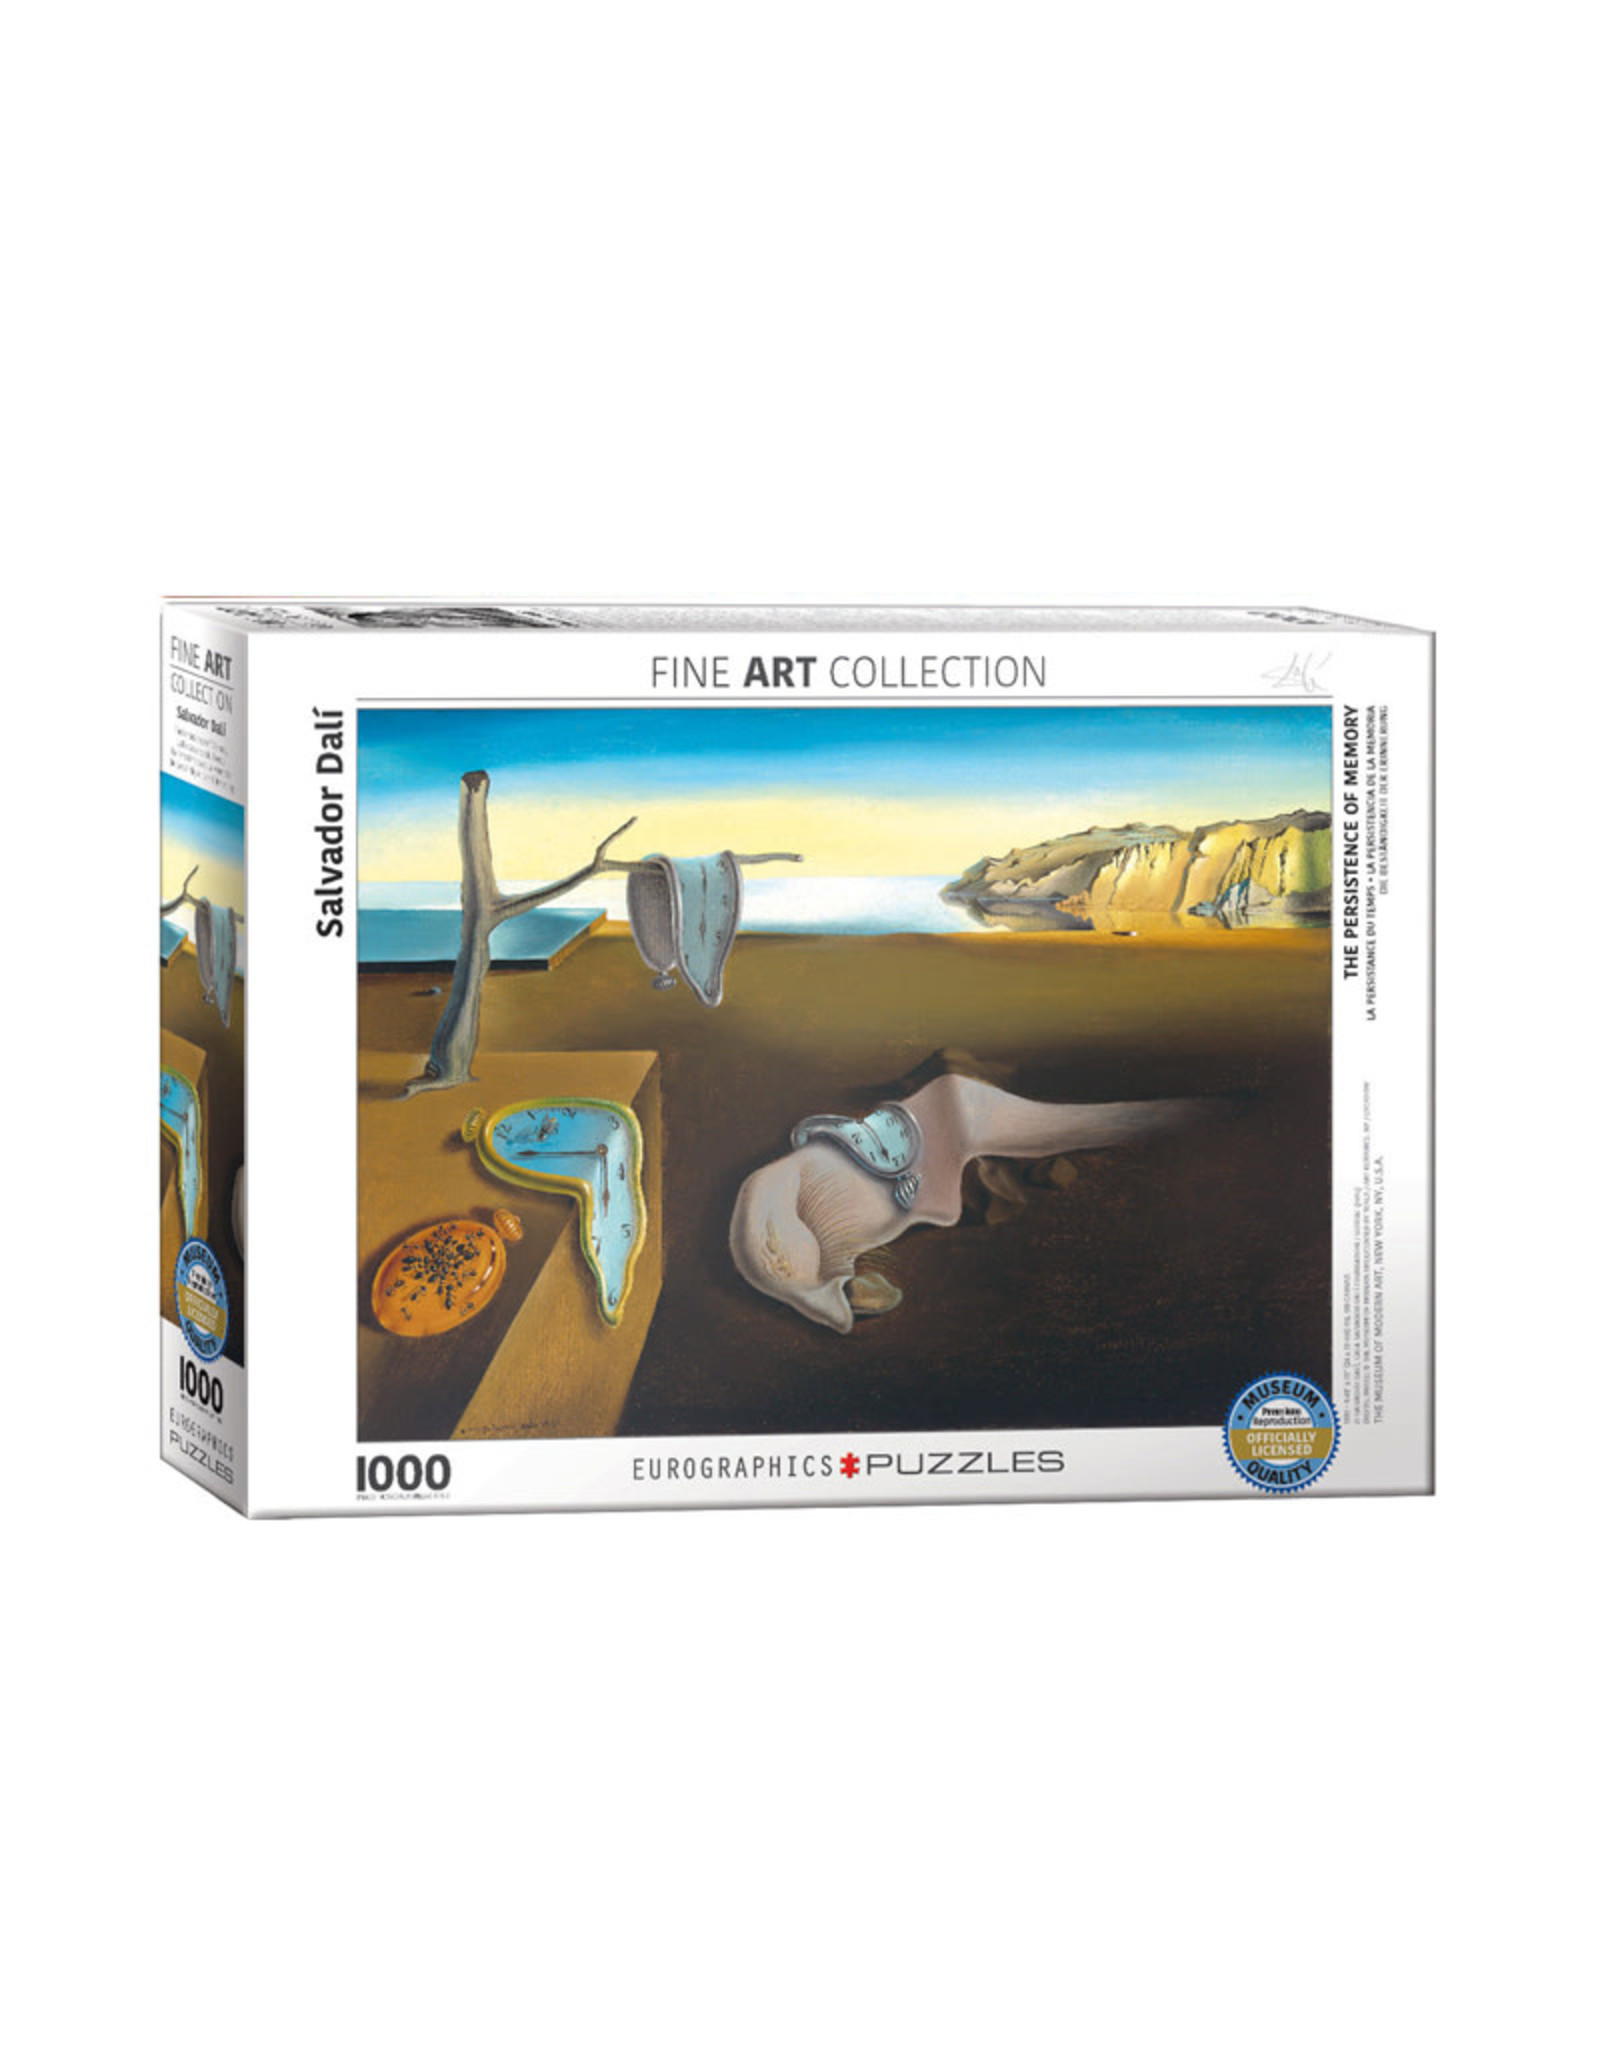 Eurographics The Persistence of Memory Puzzle 1000 PCS (Dali)